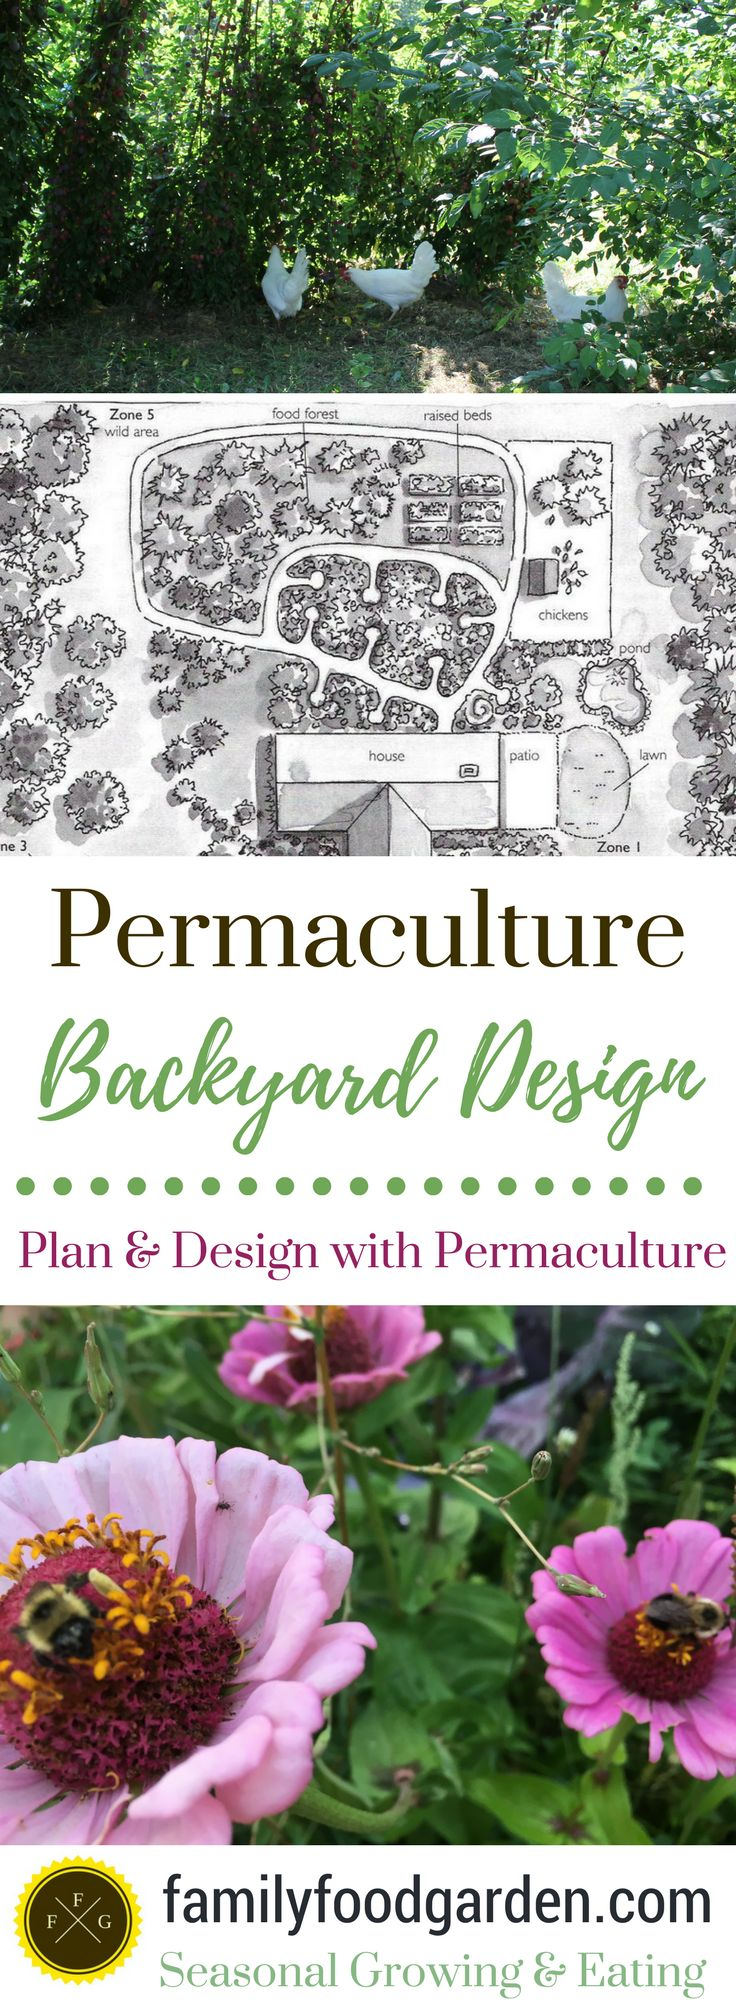 Use Backyard Permaculture Design to create an amazing garden! Backyard permaculture design principles & backyard permaculture design books help you